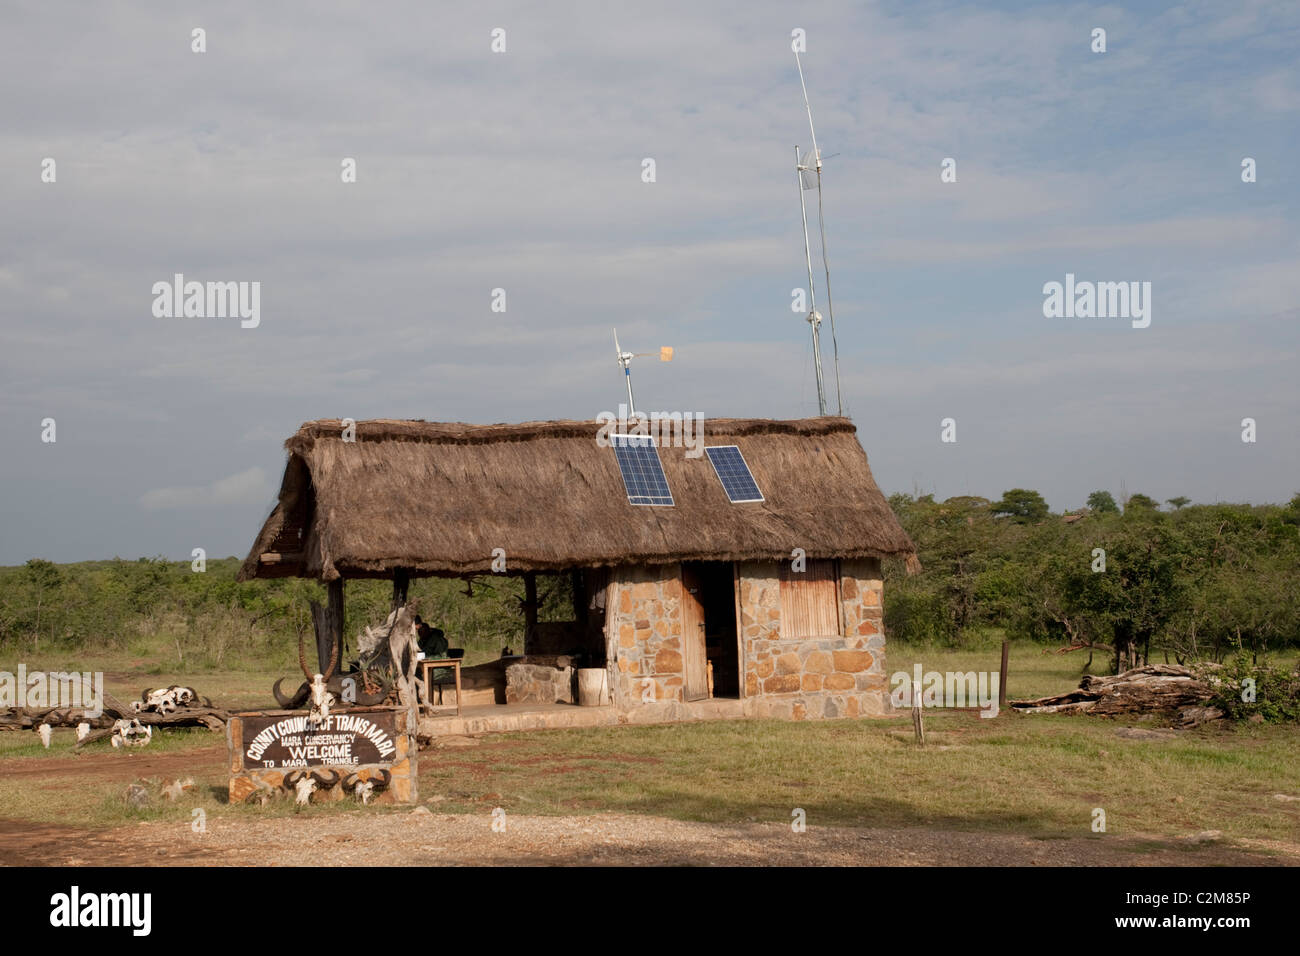 Solar PV panels & wind turbine on thatched roof game reserve entrance Masai Mara Kenya Stock Photo